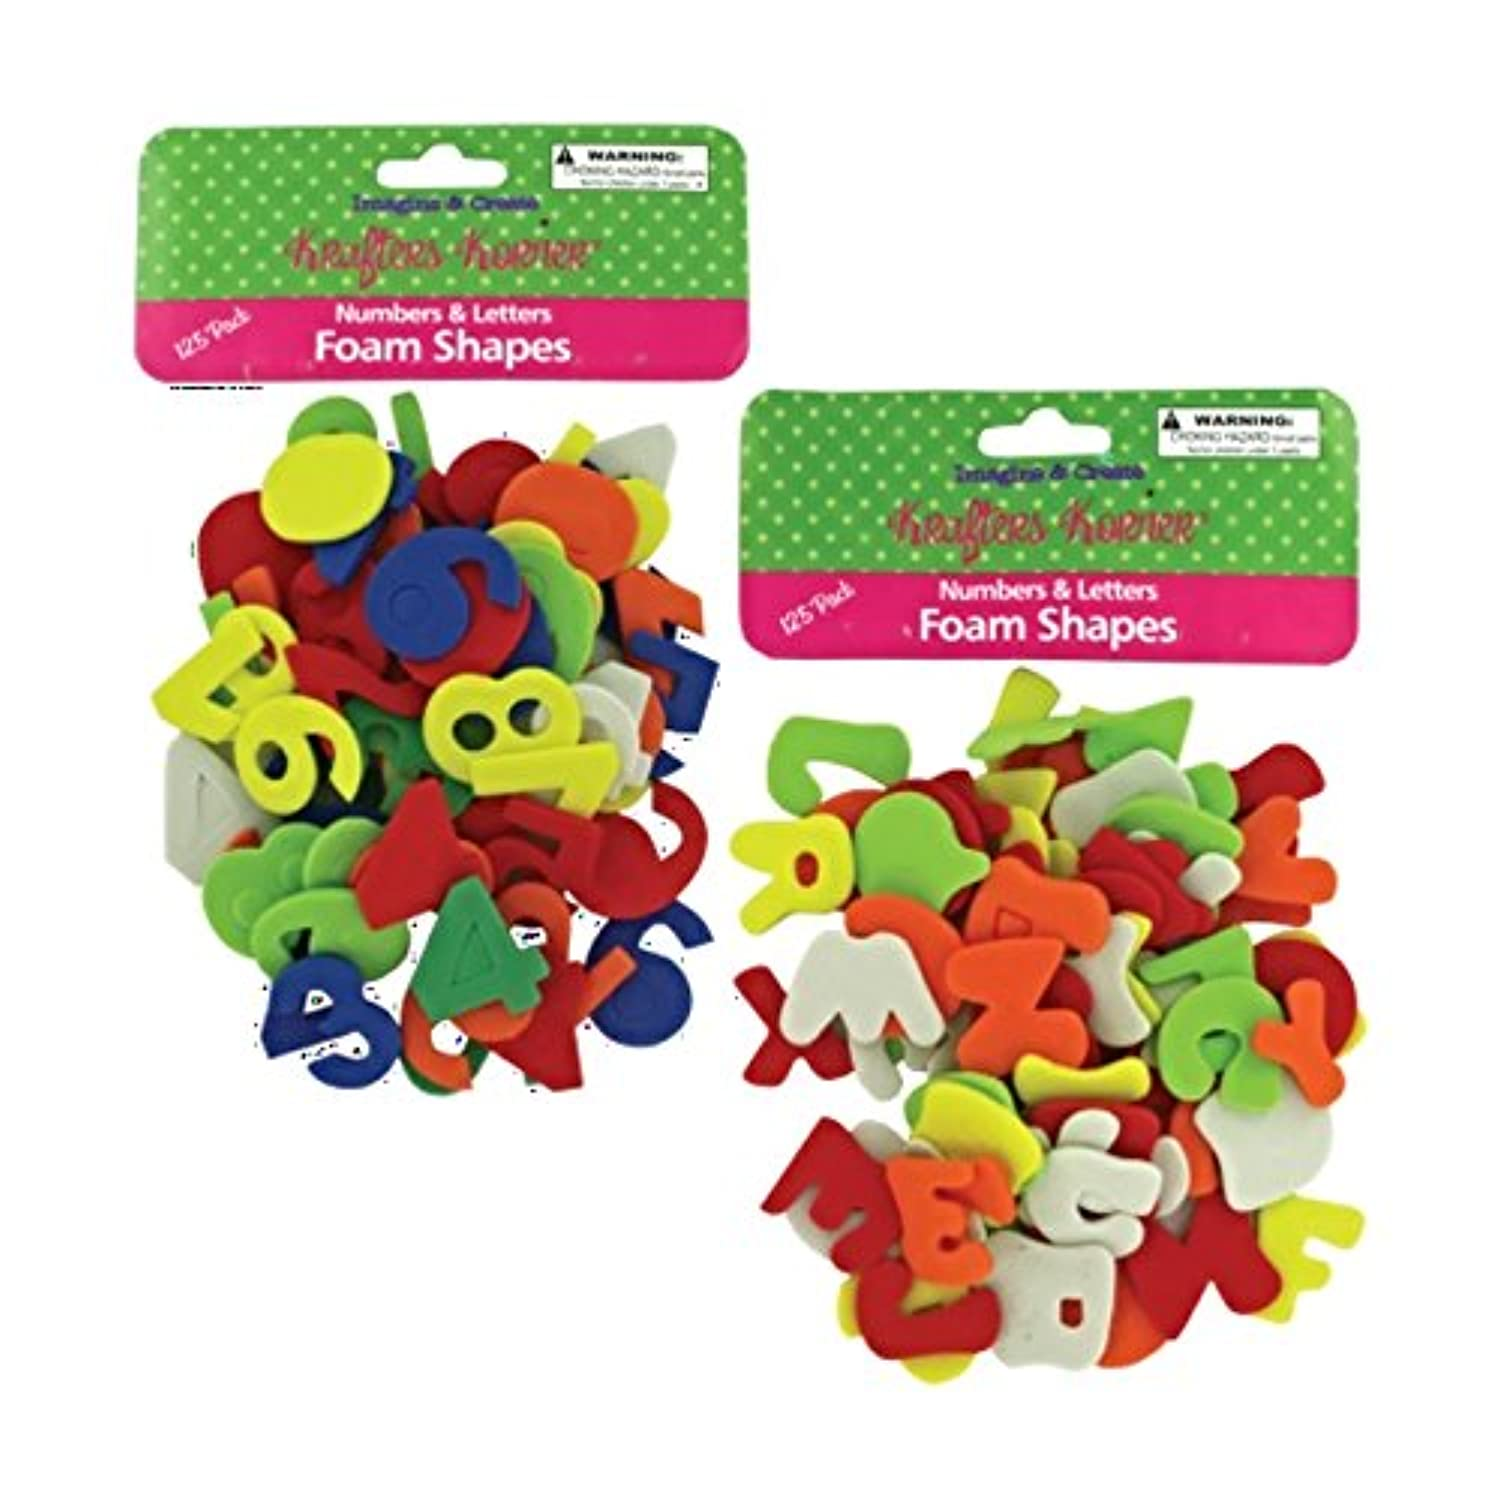 JT Crafts Numbers Letters Foam Shapes Set-12 Pack